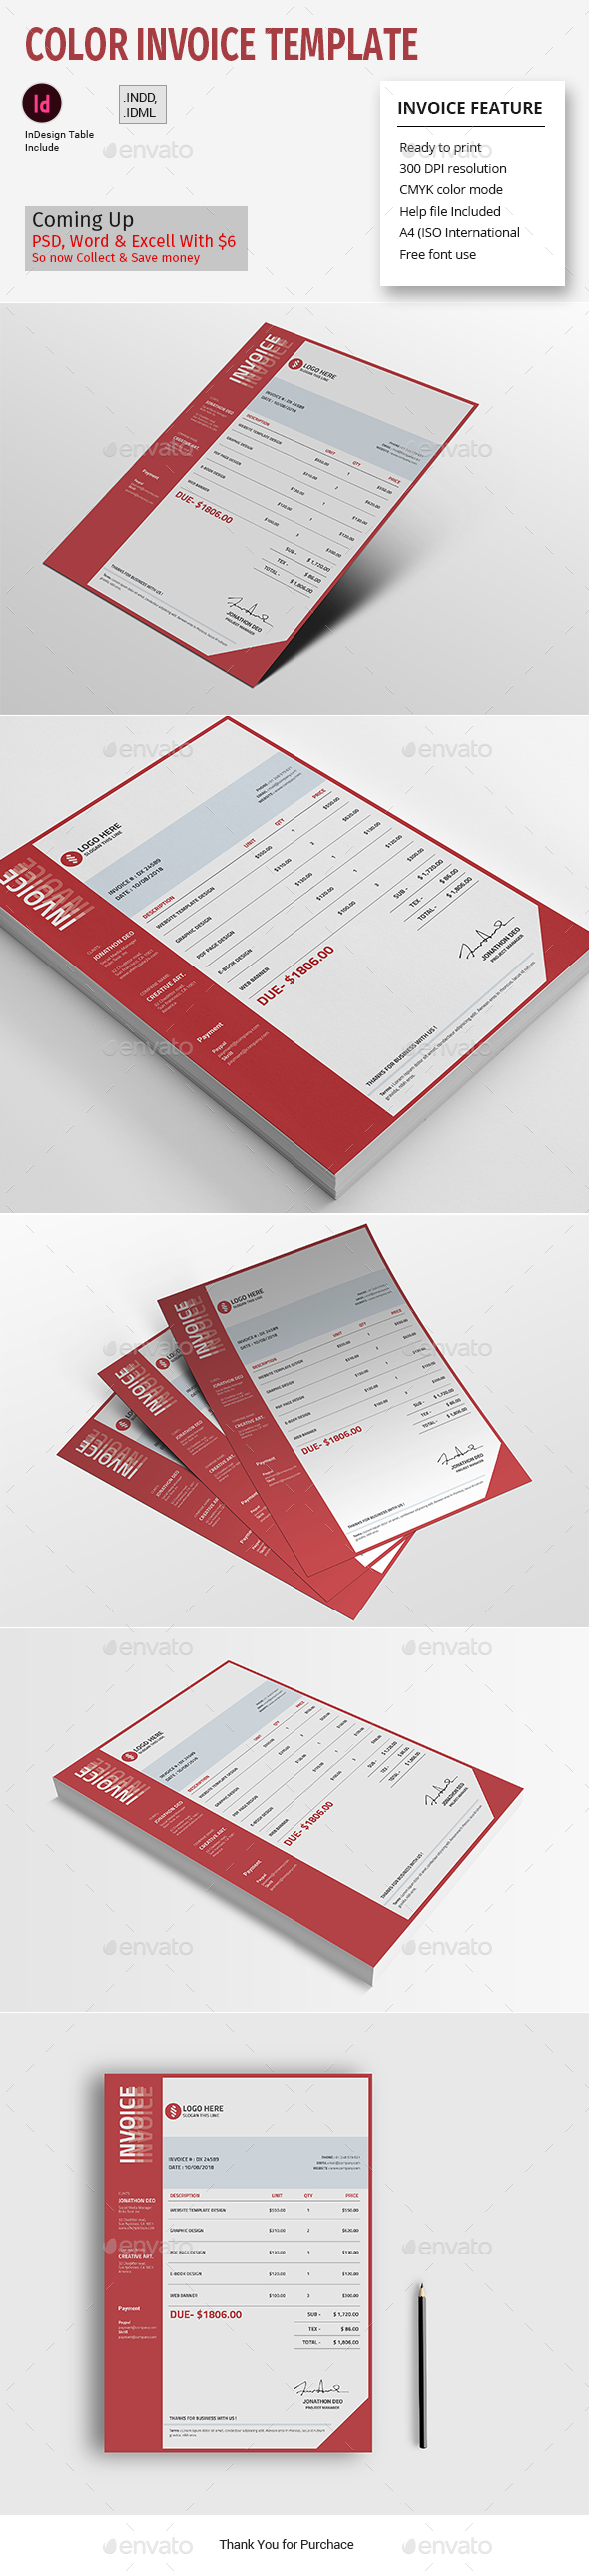 Color Invoice Template - Proposals & Invoices Stationery